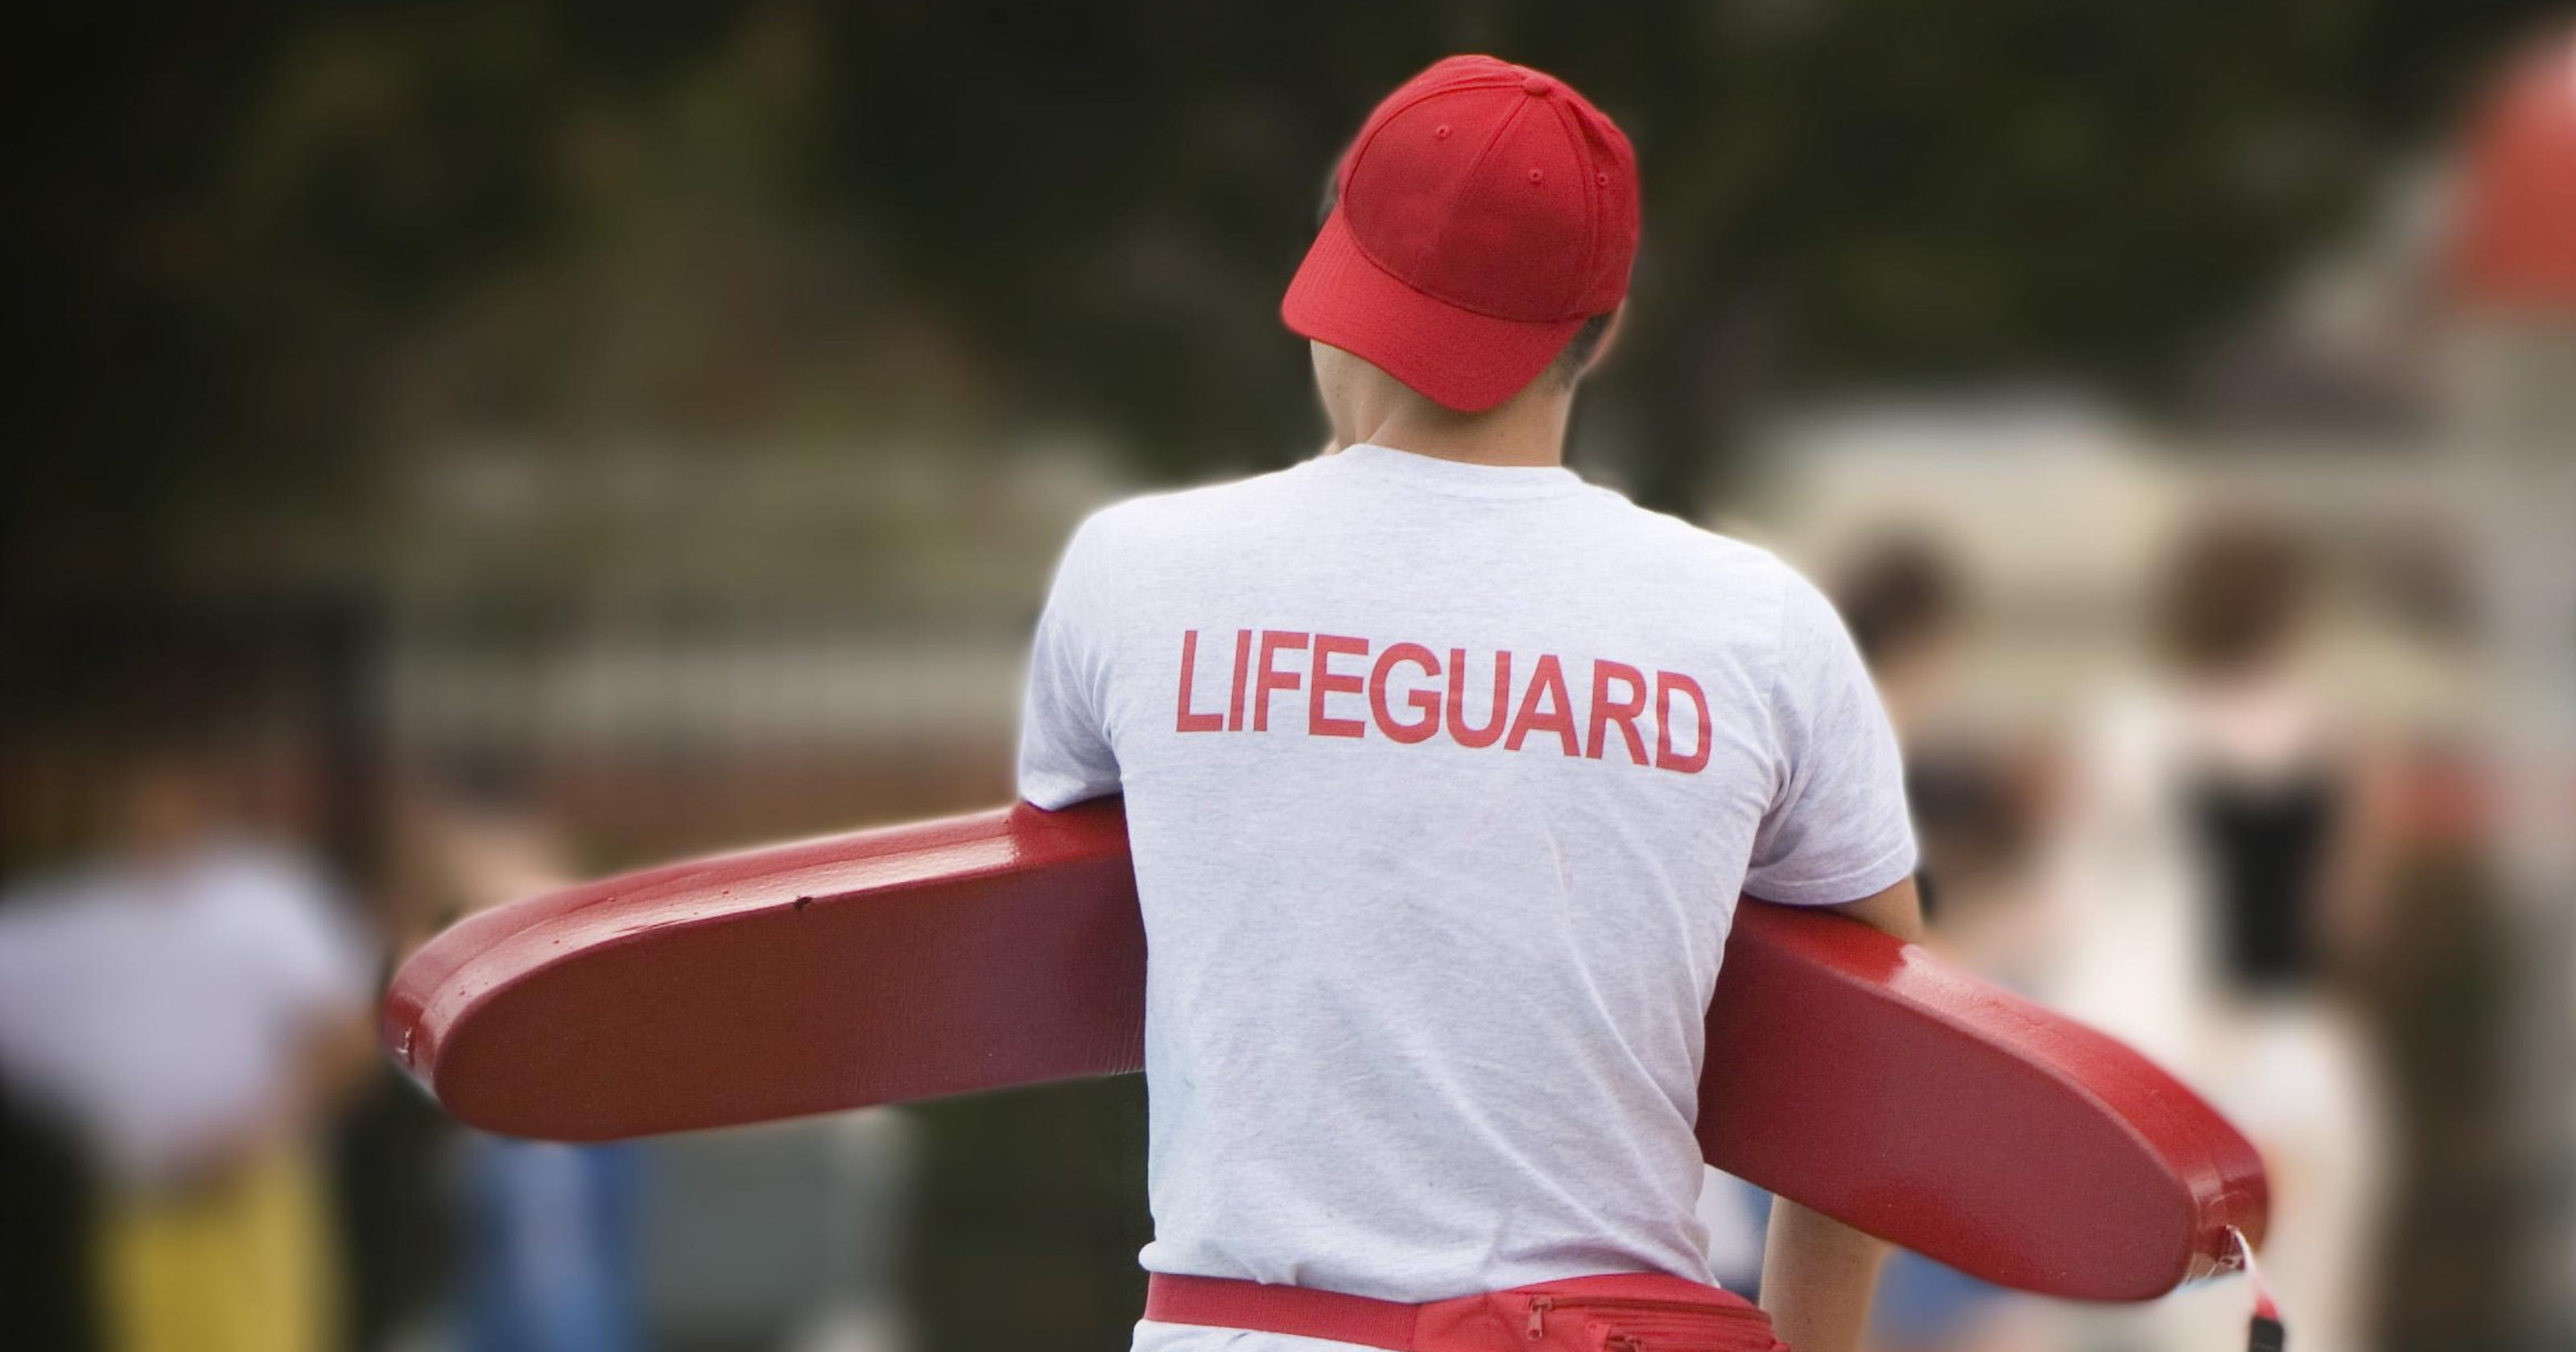 bf6941214be Red Cross Lifeguard Training to be offered at Fond du Lac Aquatic Center